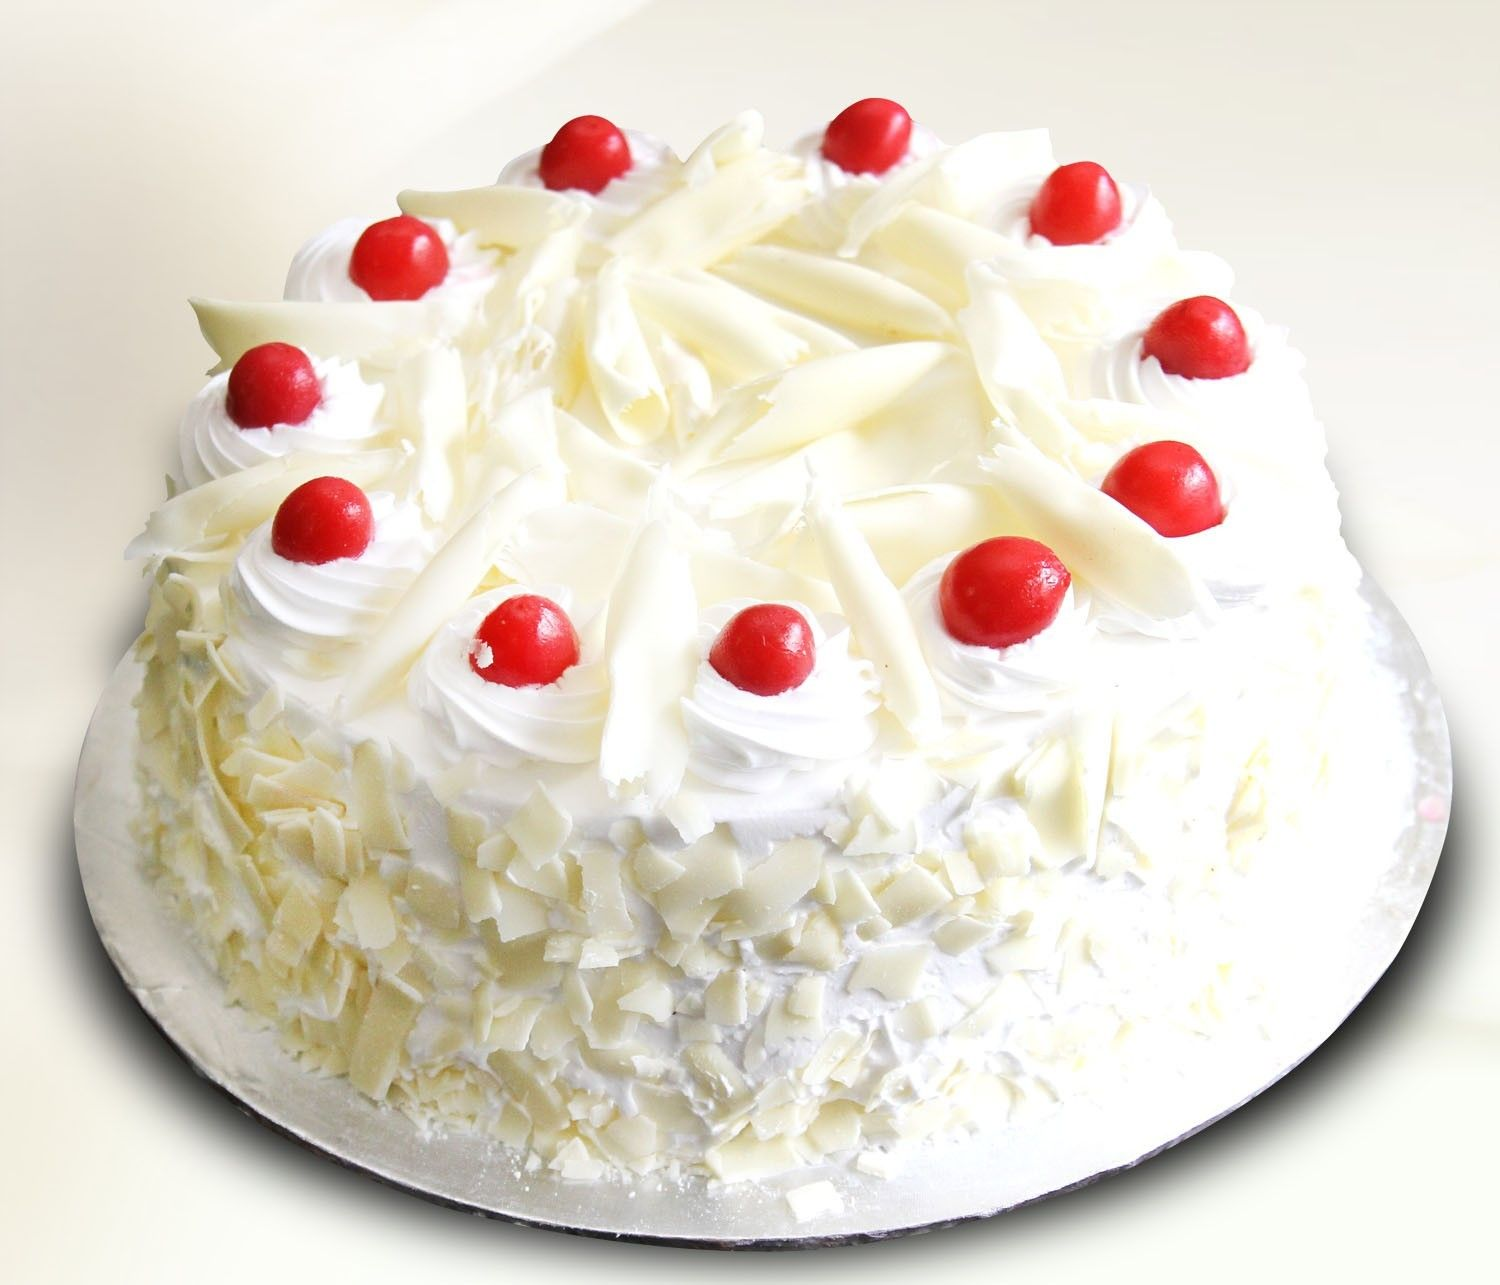 Send Cake Online From Best Shop In India Kalpaflorist Truffle Cakes Half Kg Eggless Gifts Birthday Anniversary Good Service